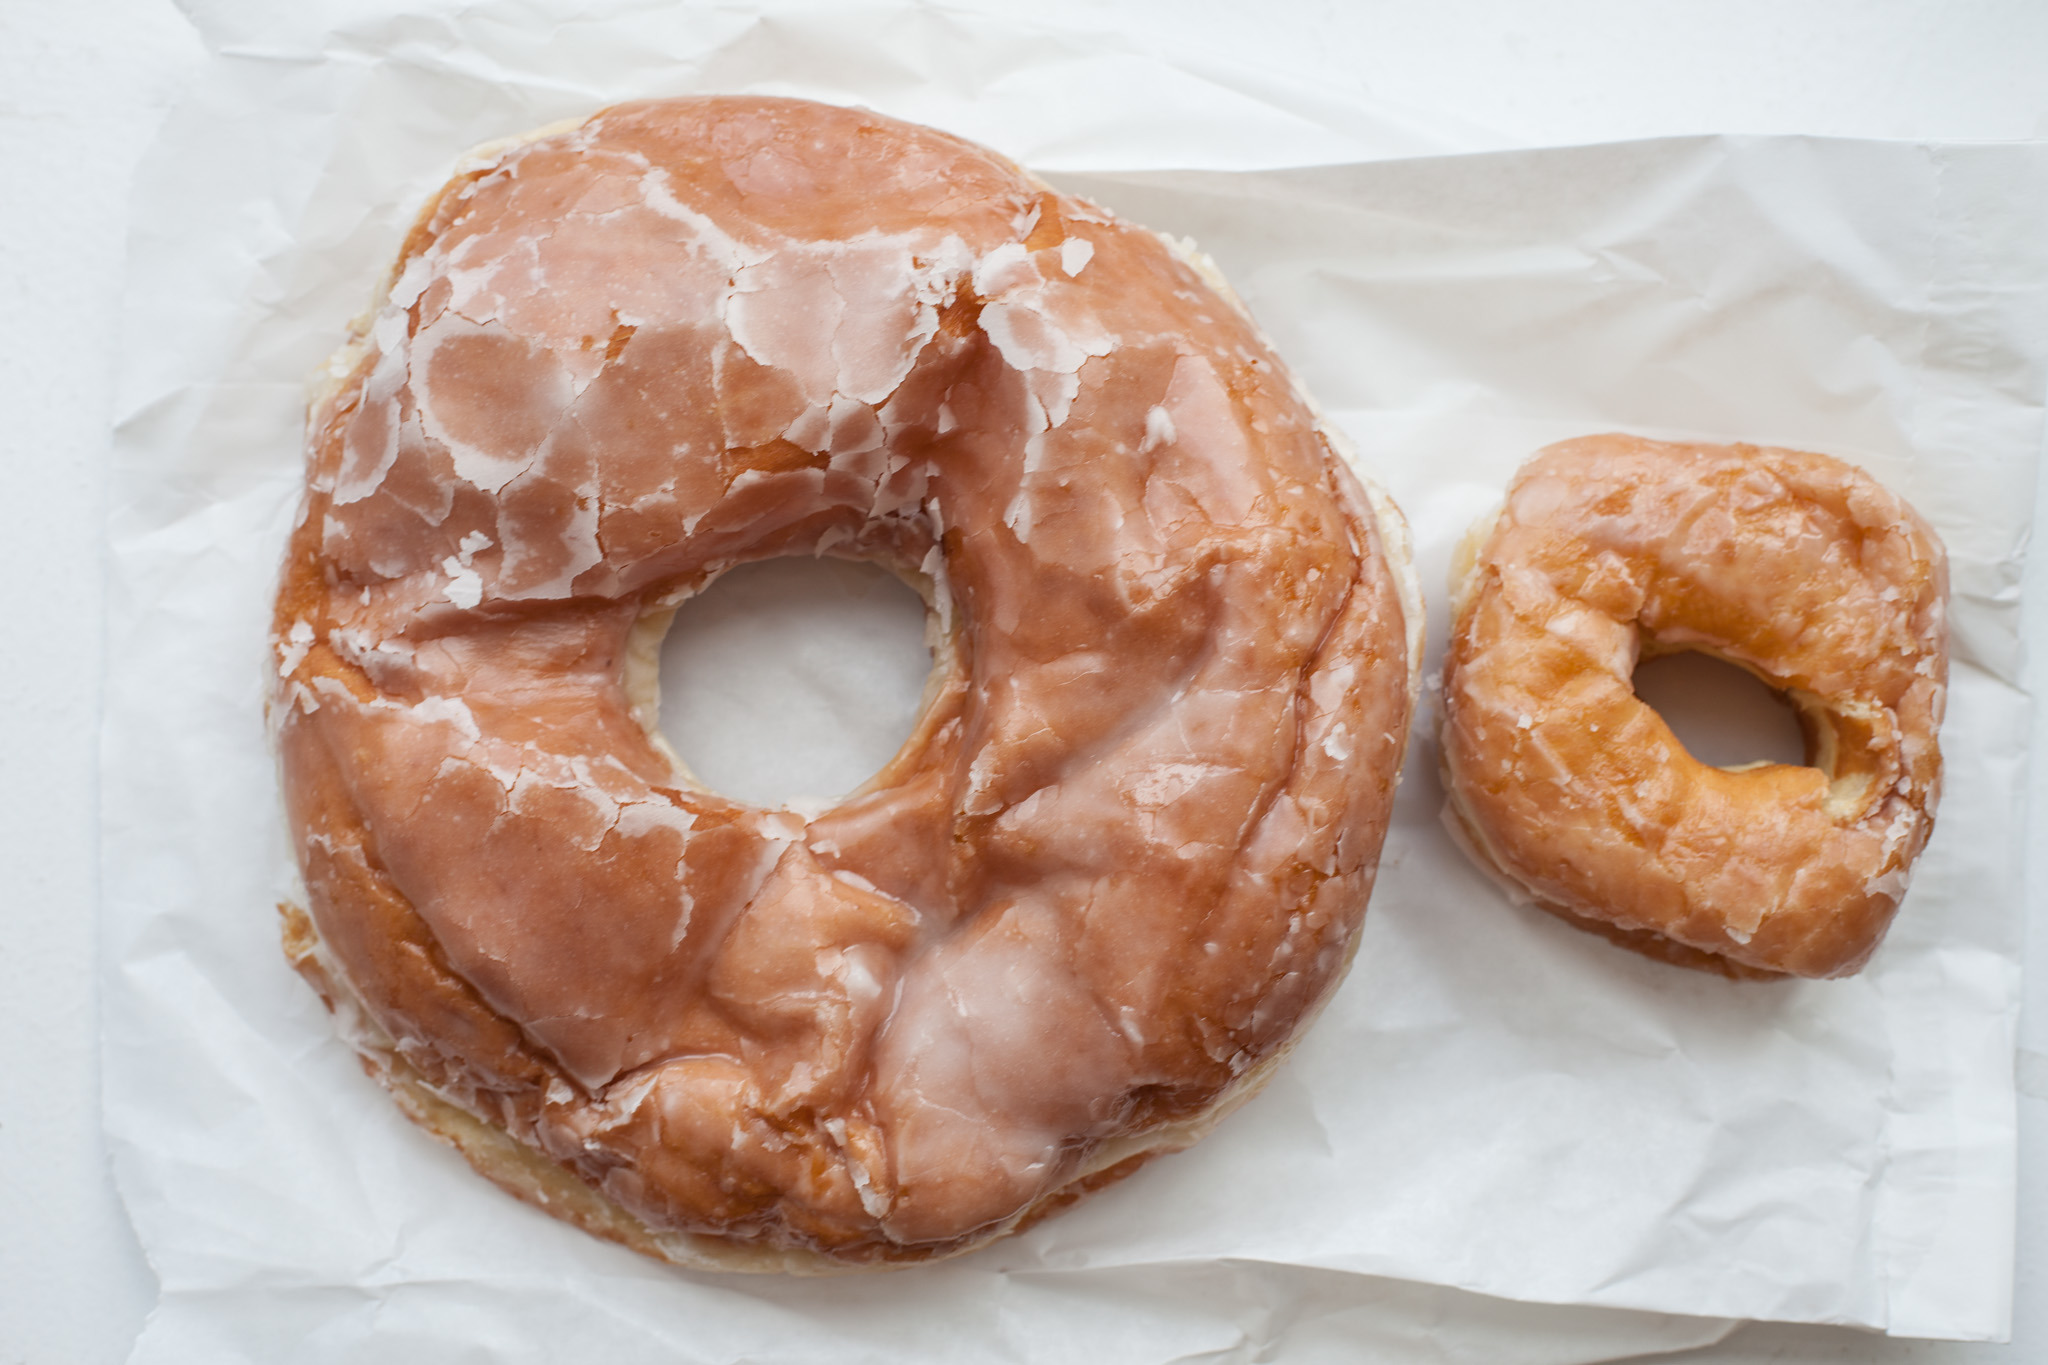 The best donut shops in Chicago